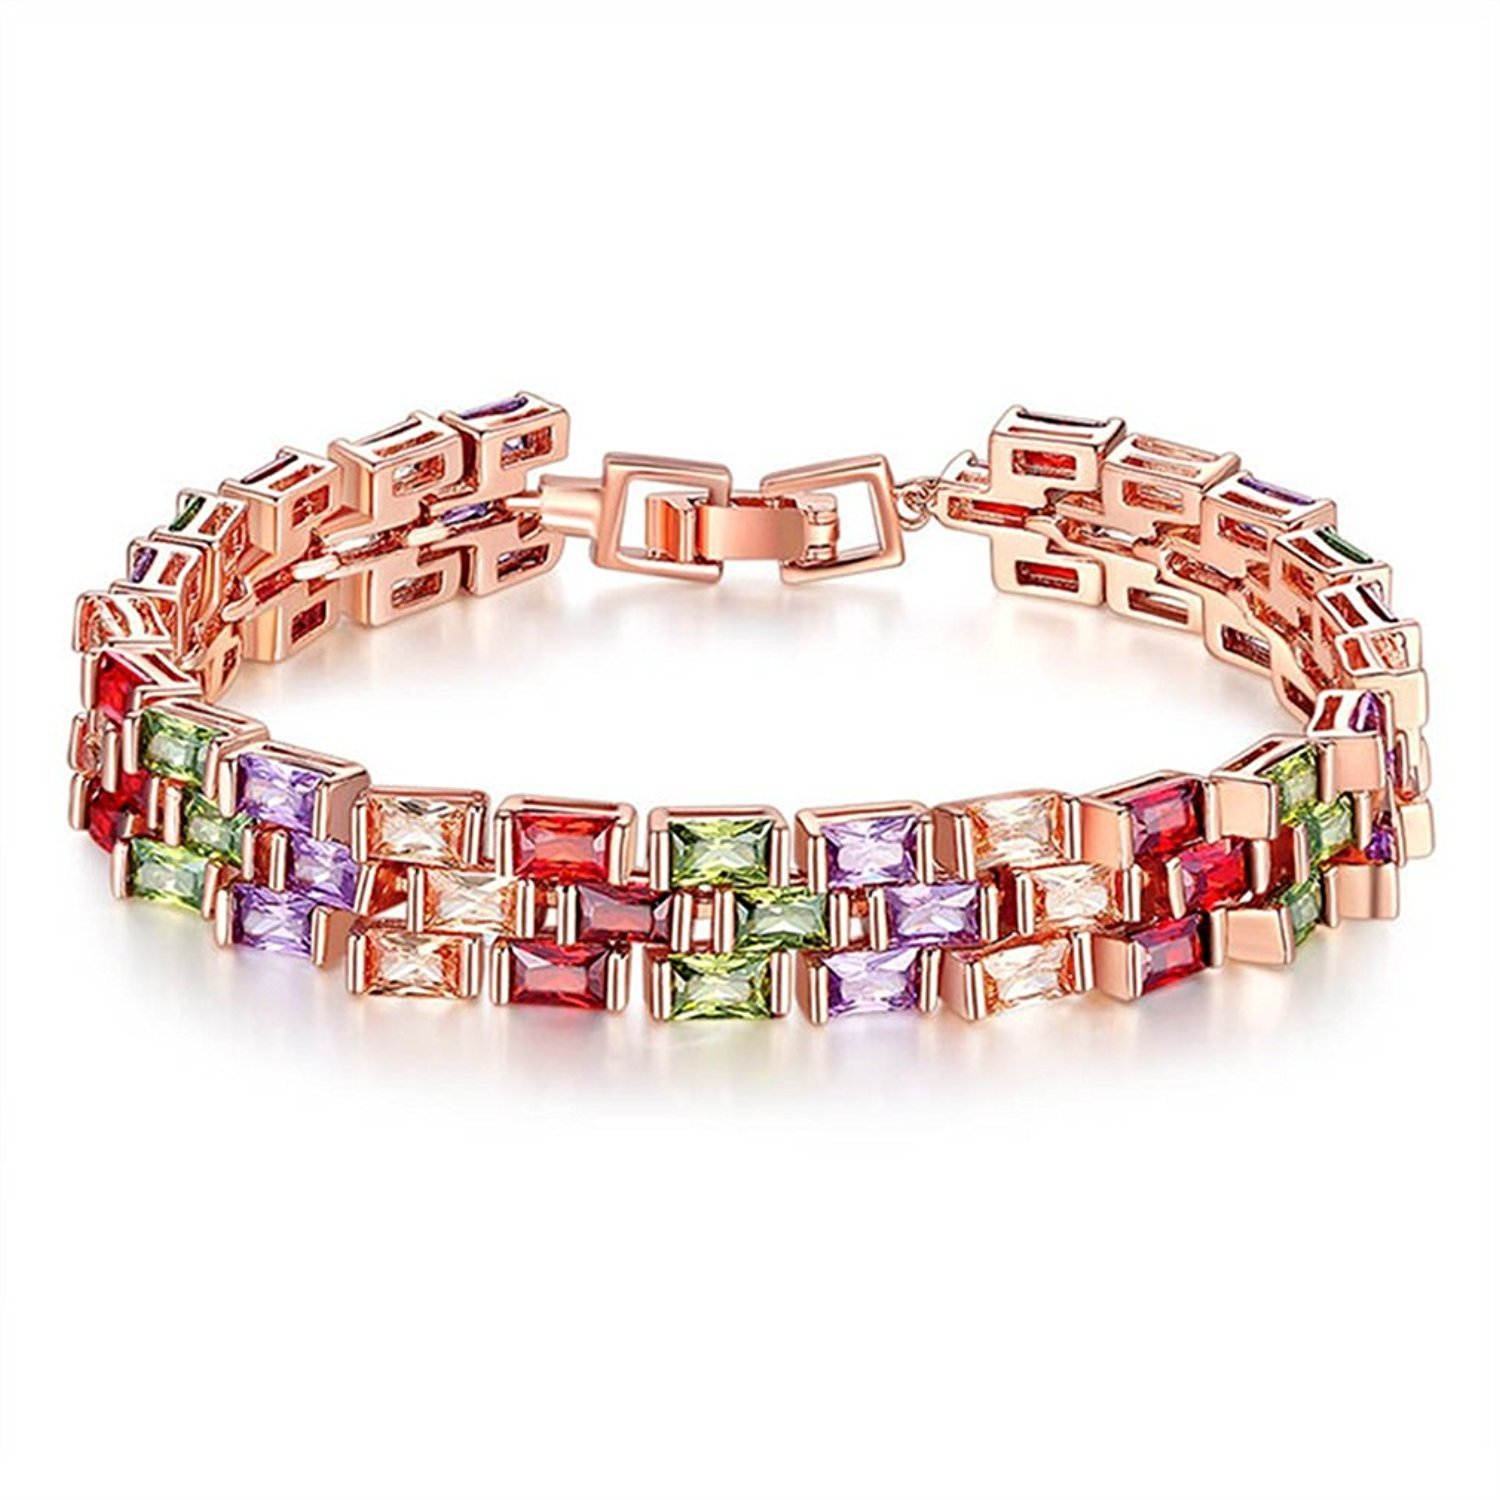 DVANIS Buckle Bracelet Rose Gold Plated Color Cubic Zirconia for Women Girls Party Jewelry